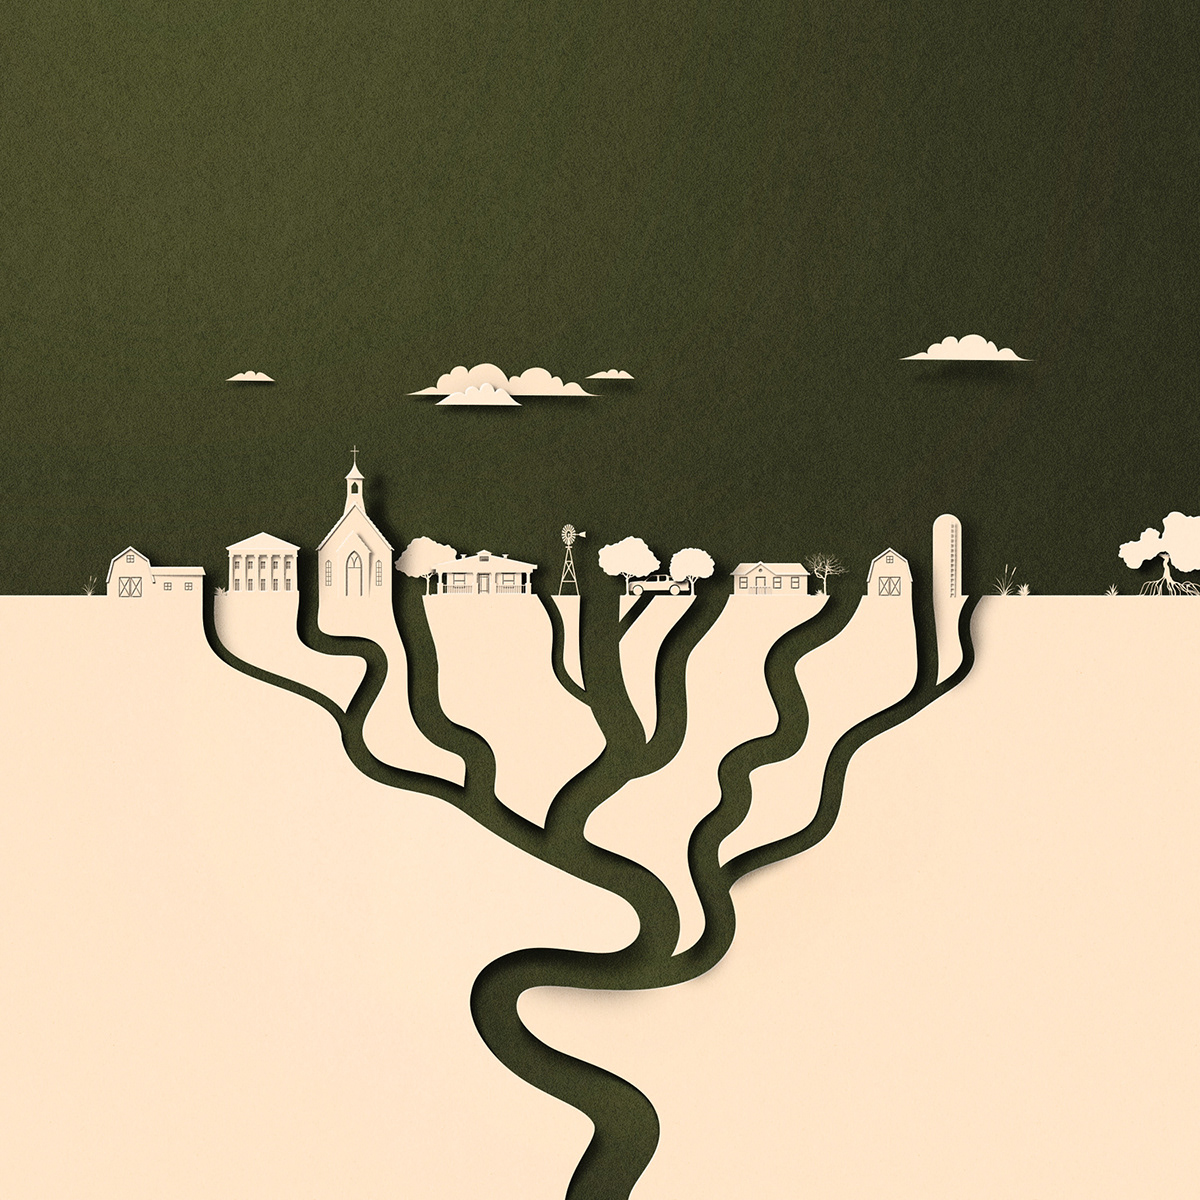 paper cut editorial minimal climate climate change america usa